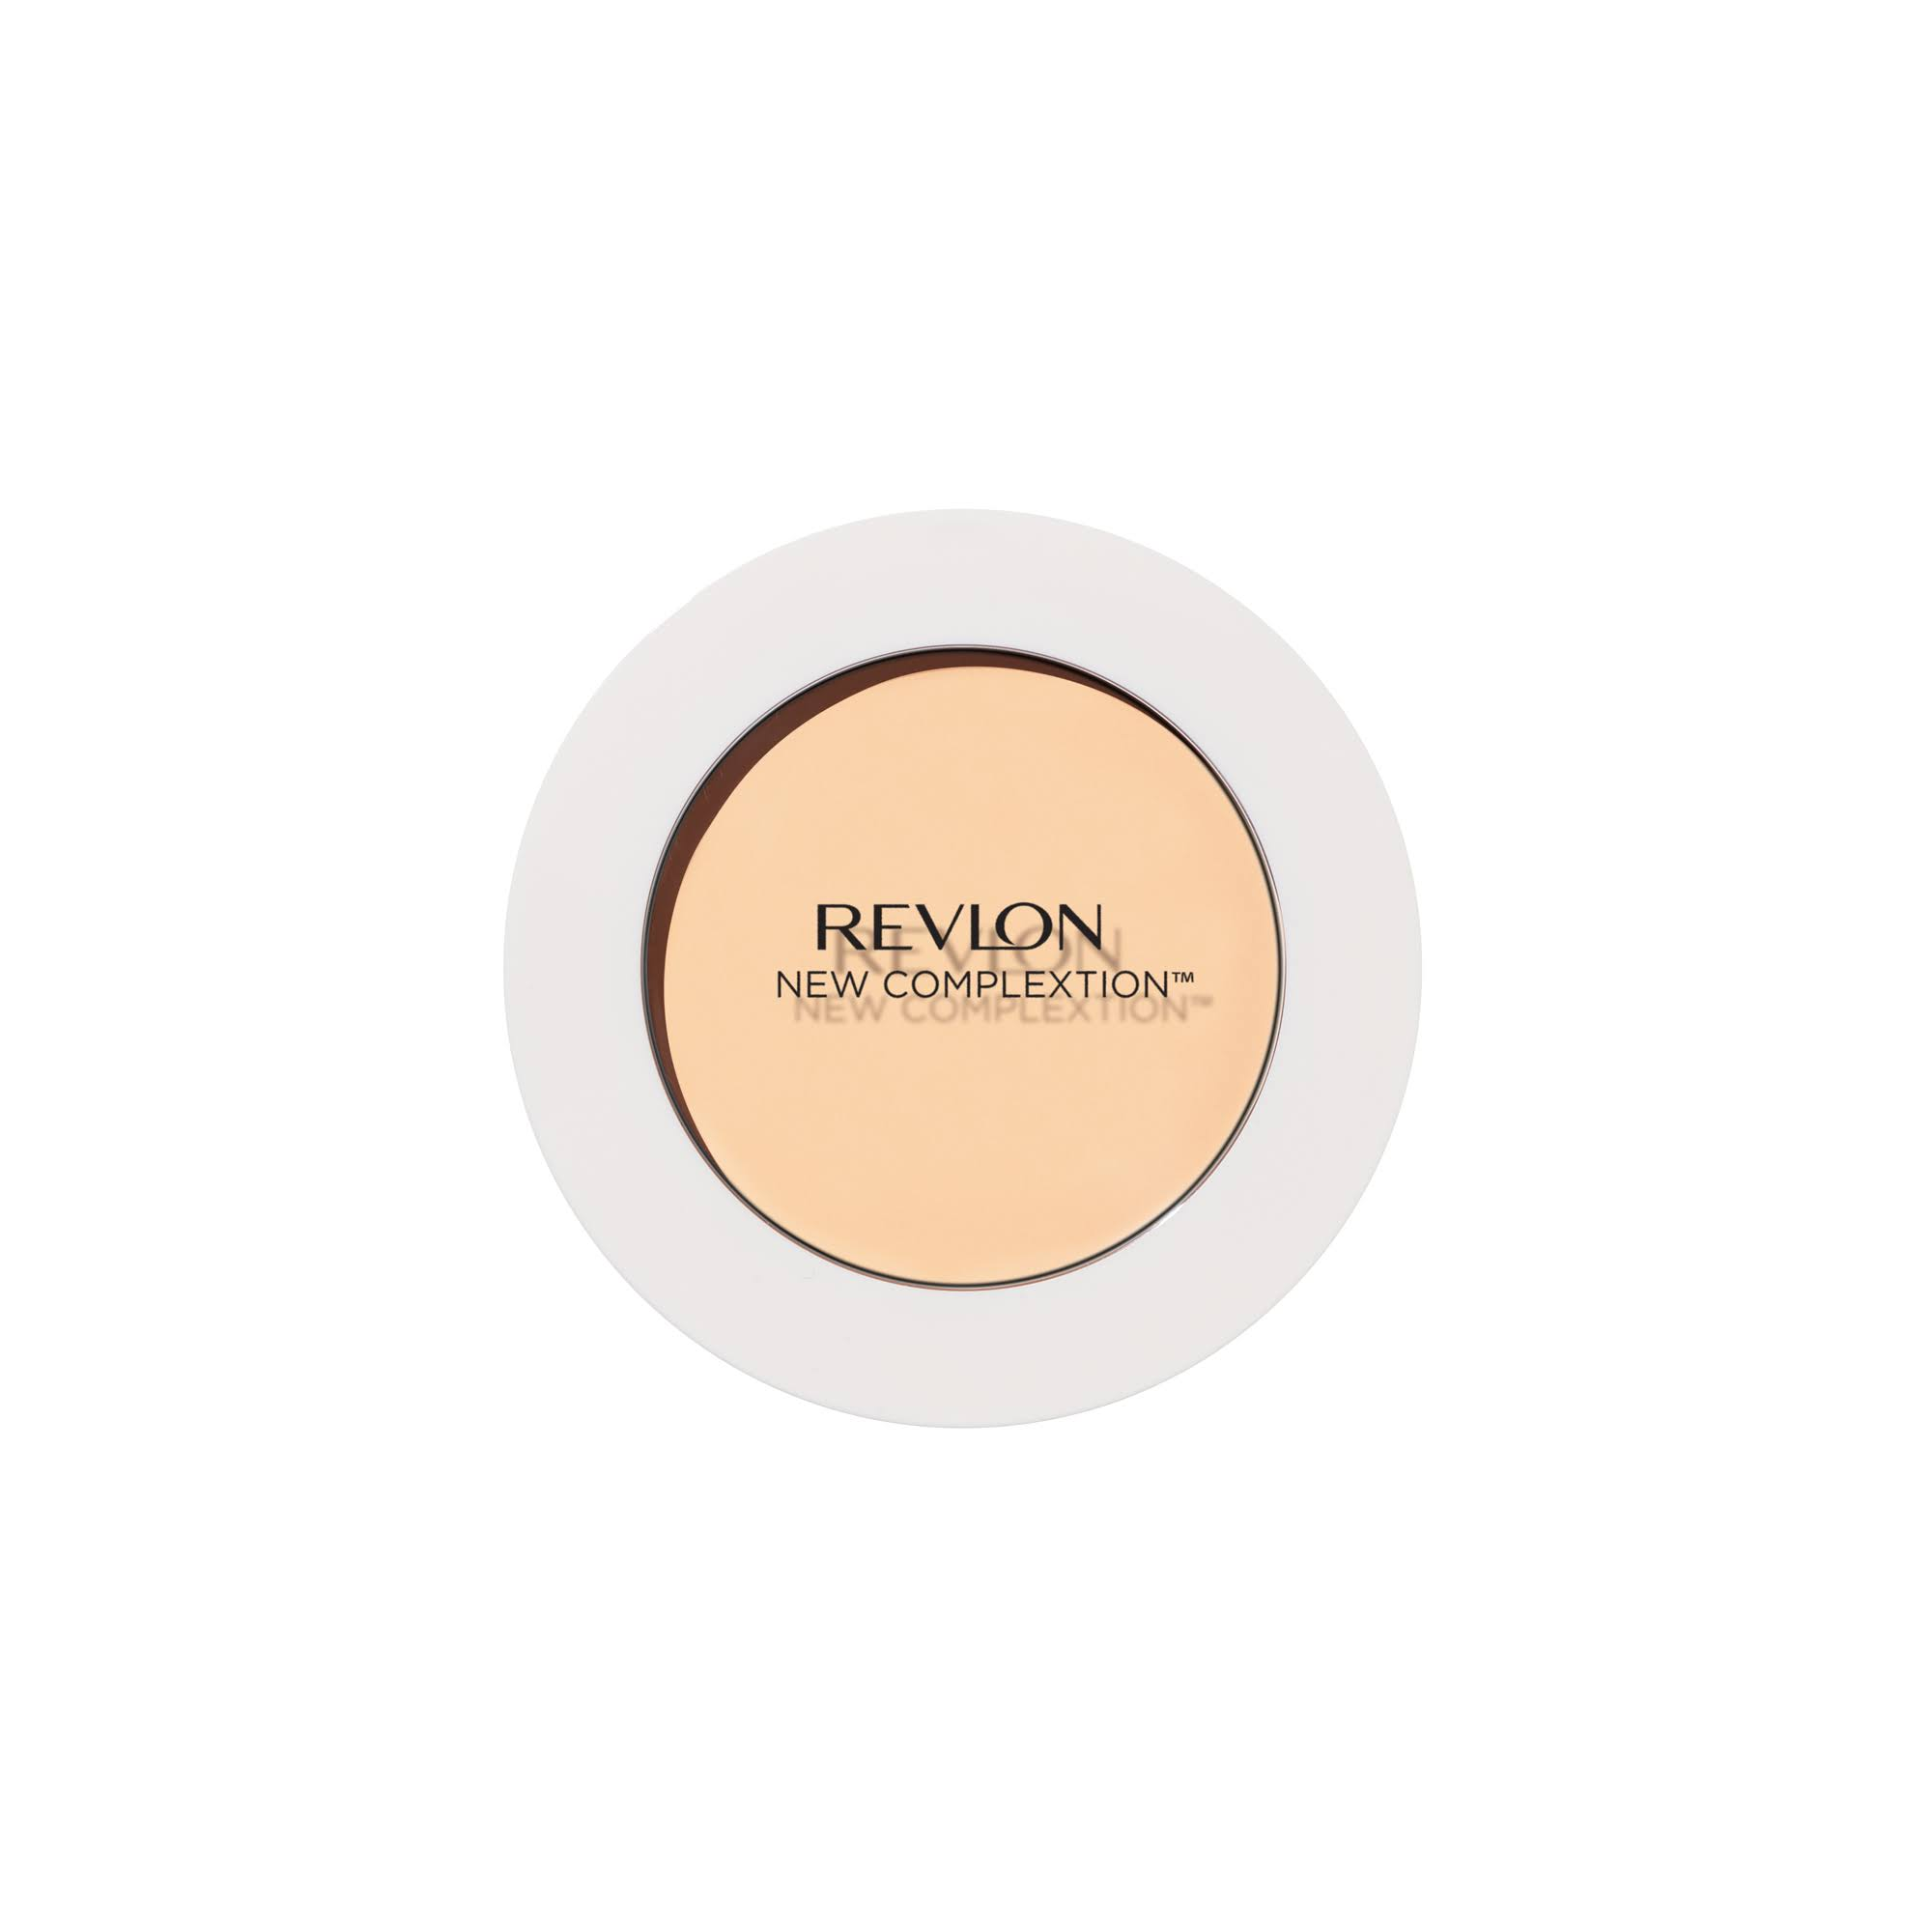 Revlon New Complexion One-Step Compact Makeup - SPF 15, 01 Ivory Beige